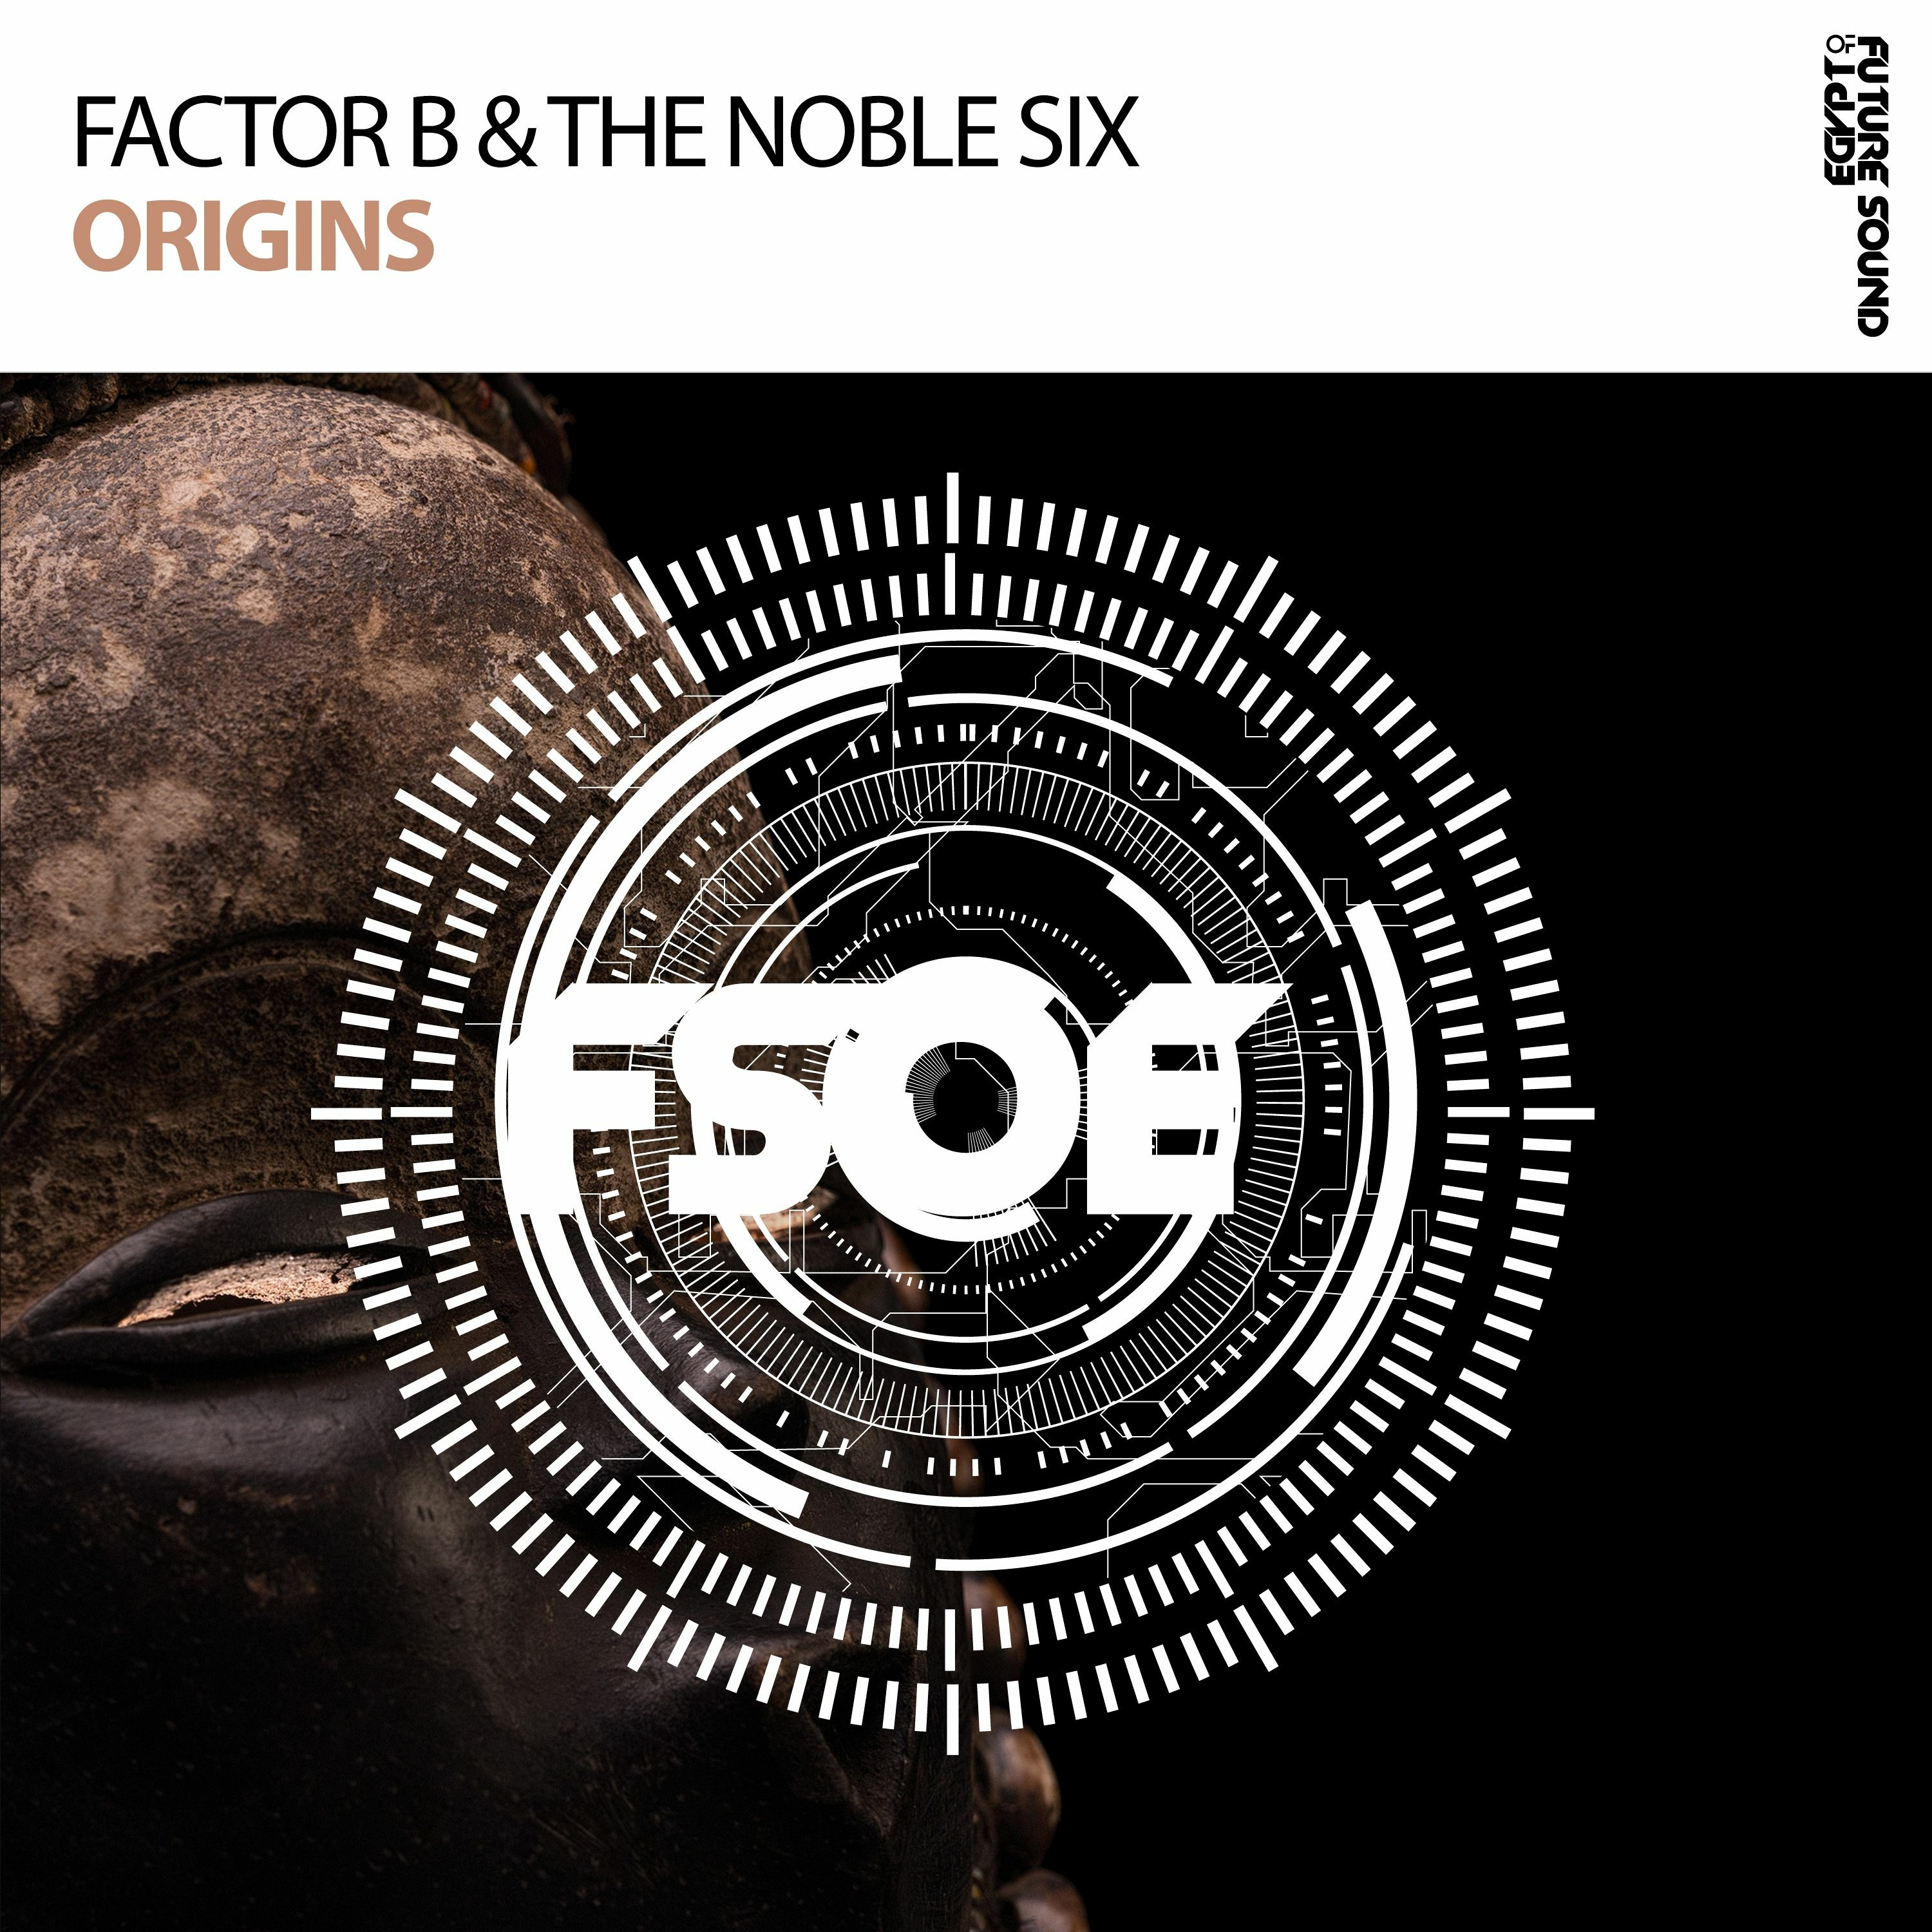 Factor B & The Noble Six - Origins [FSOE] ASOT822 RIP